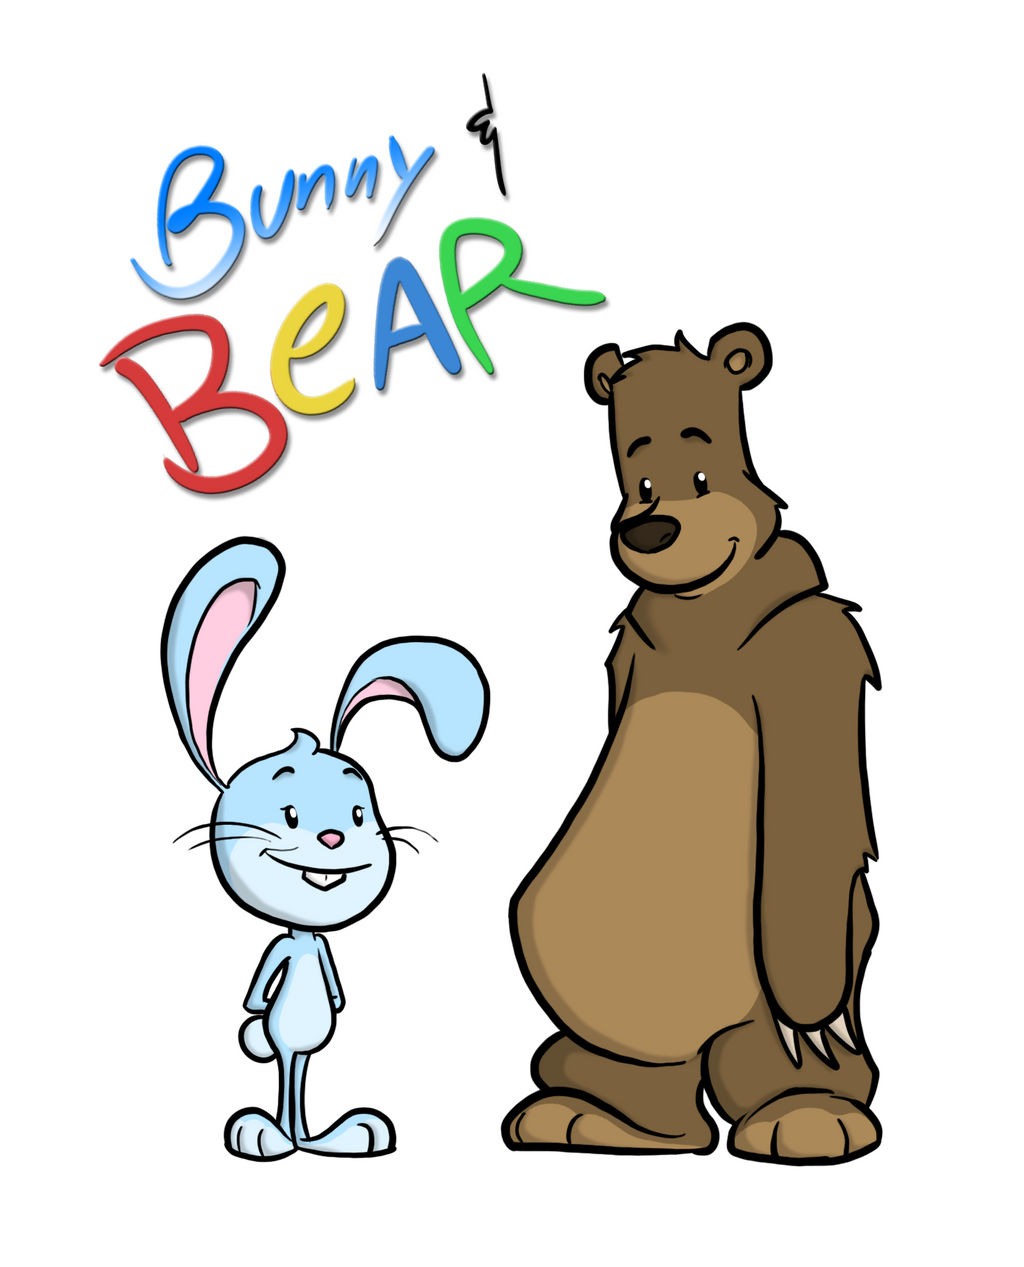 'Bunny and Bear' Character Art by captainslam